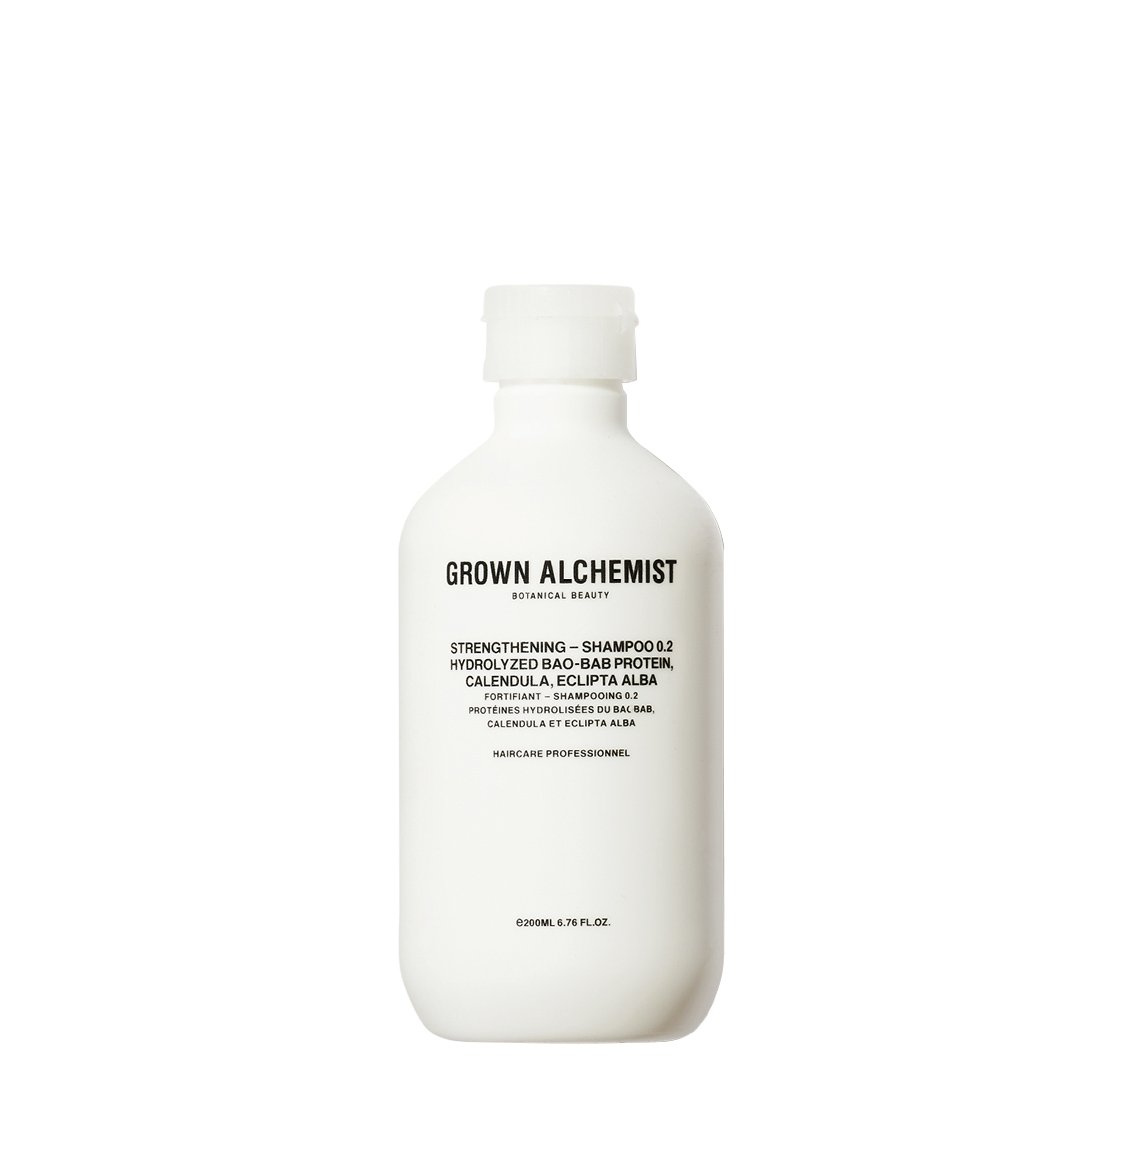 Grown Alchemist Strengthening Shampoo 200ml